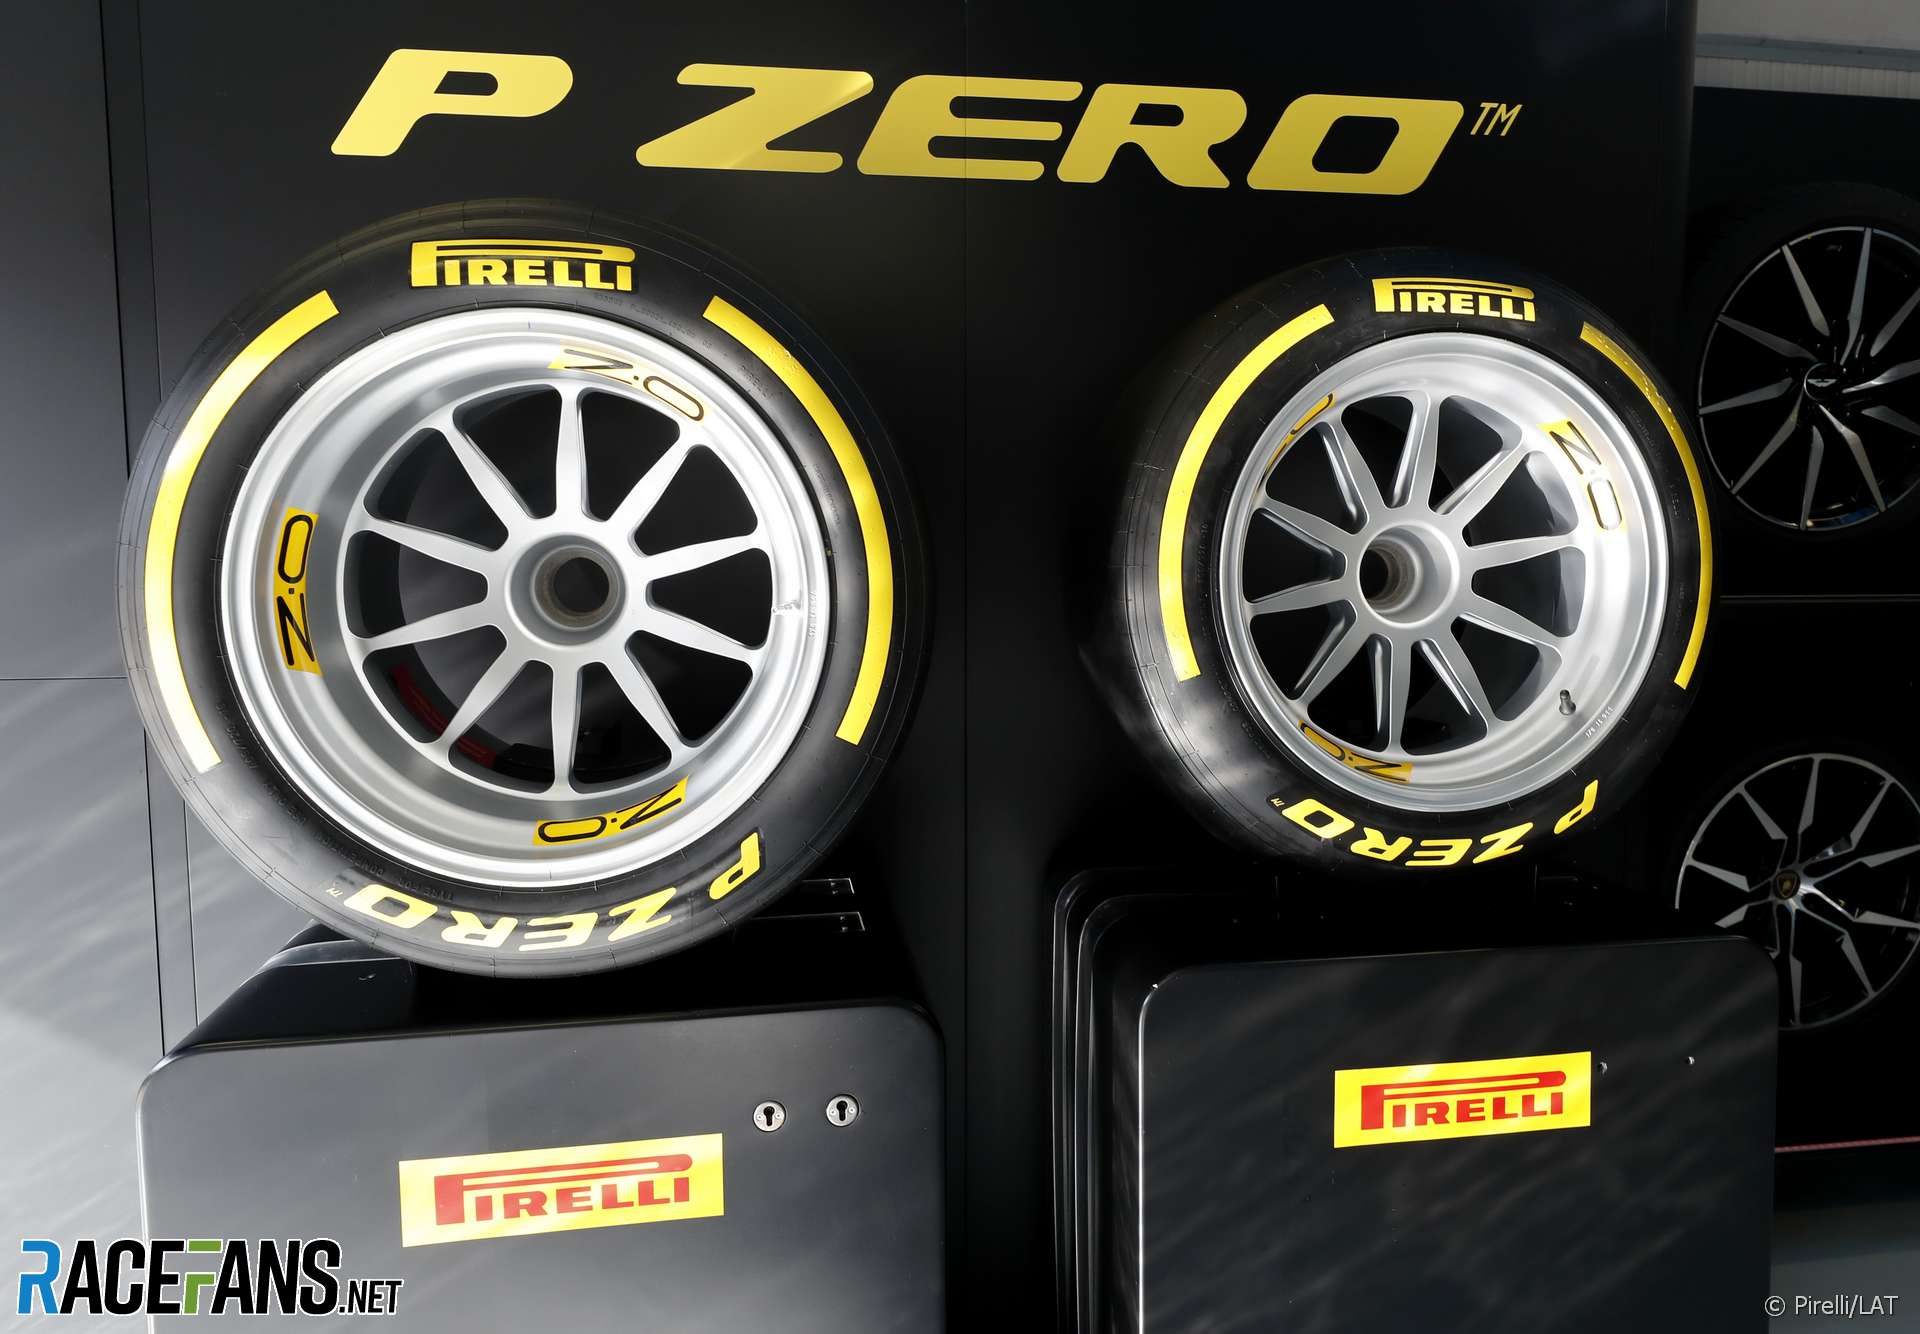 18 Inch Tires >> Video Pirelli Perform First F1 Test With 18 Inch Tyres